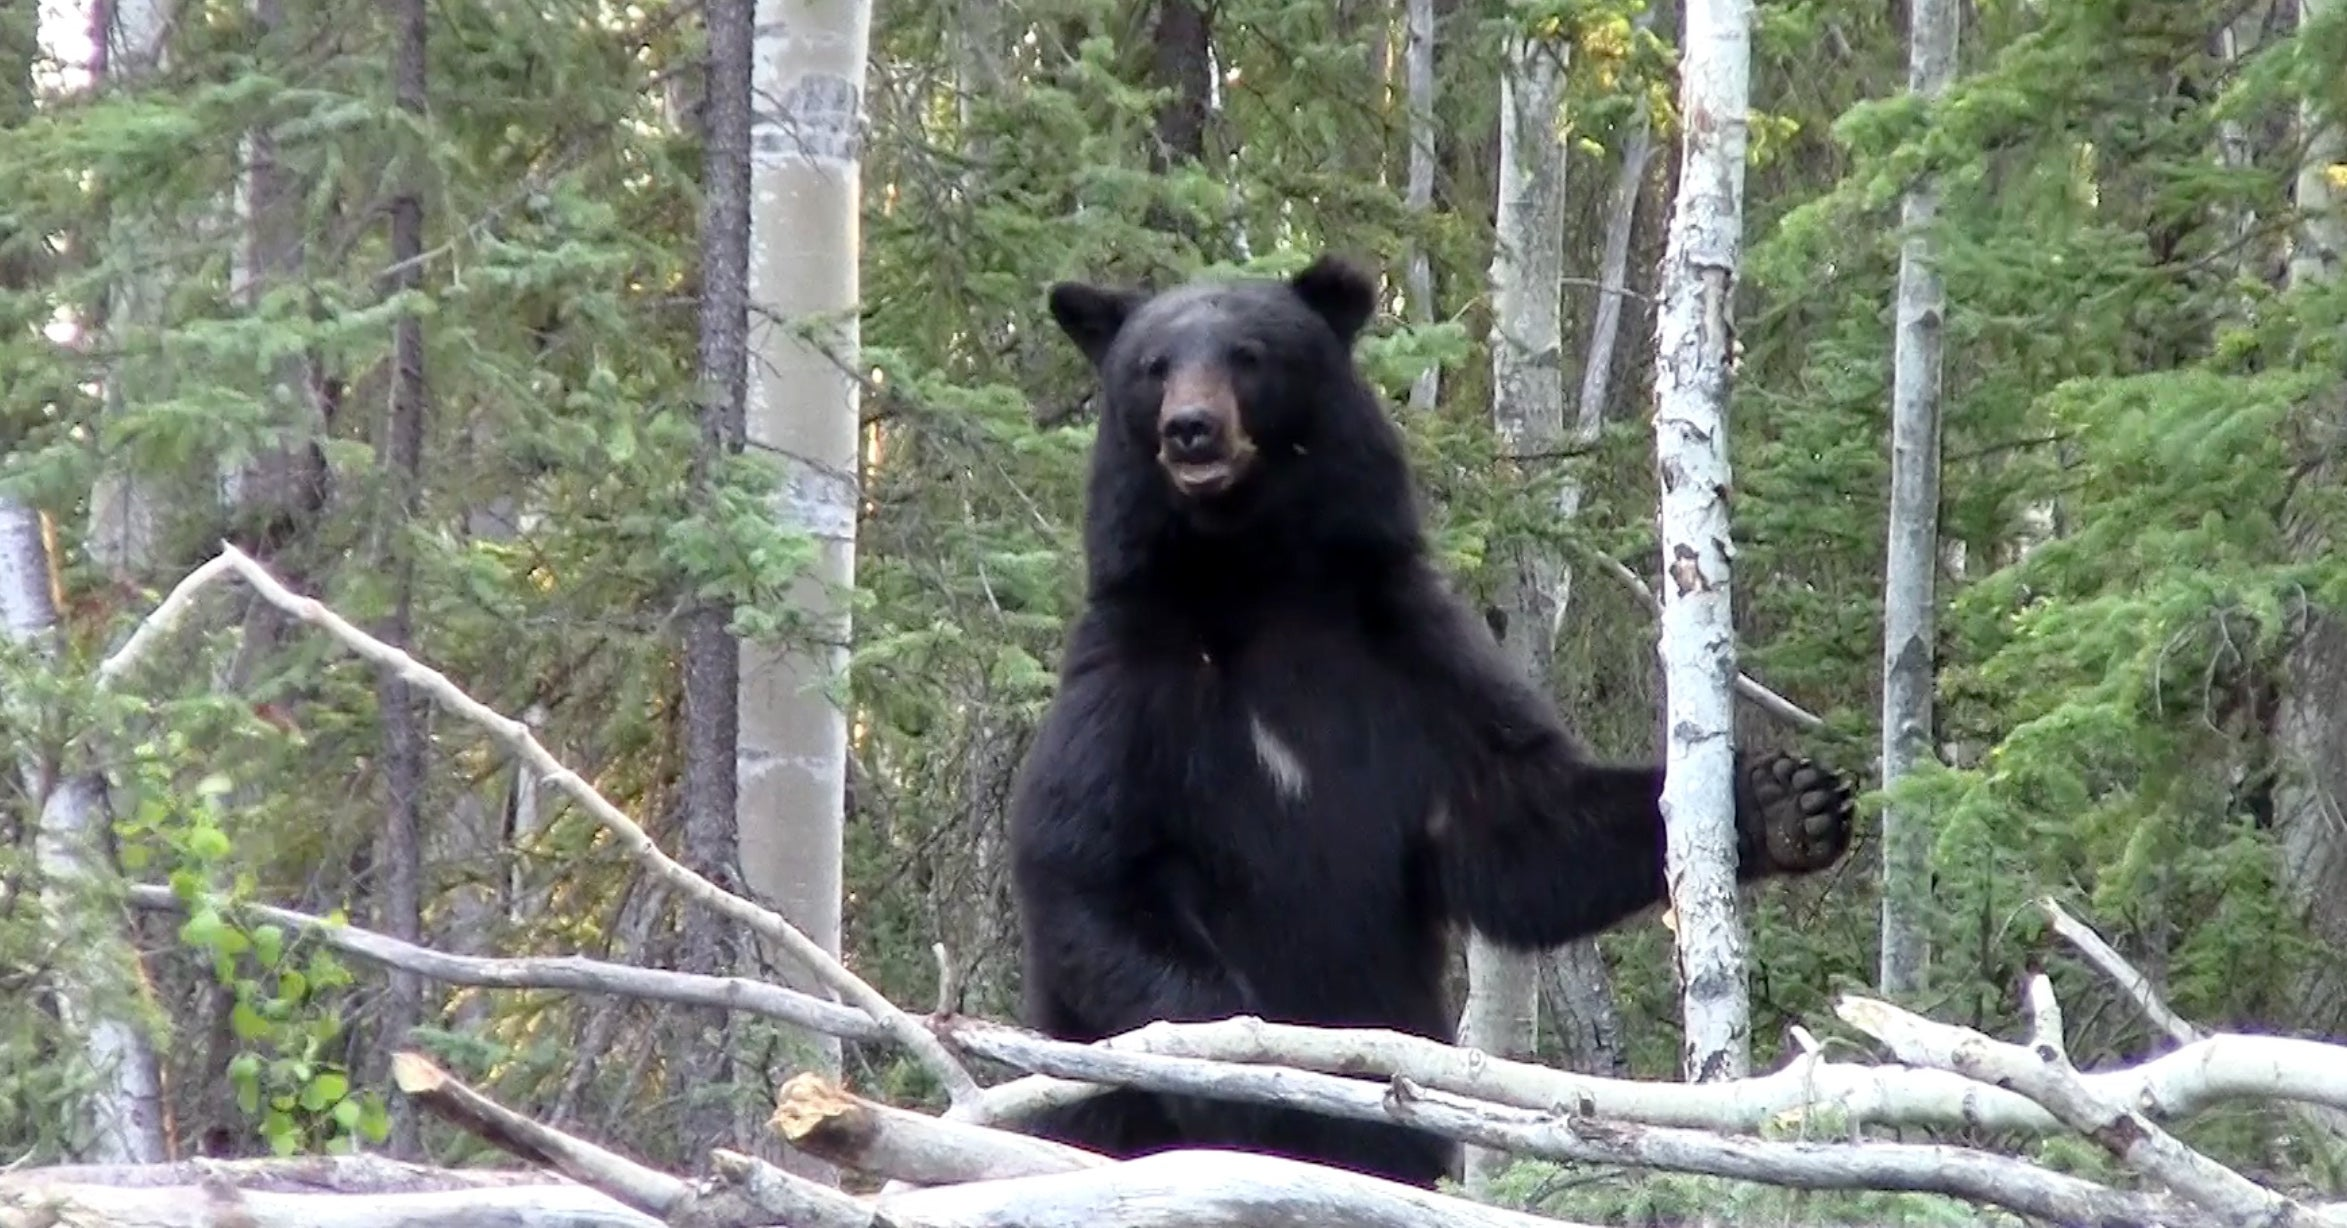 Traditional Bowhunting Video: First Spring Black Bear Hunt of 2015